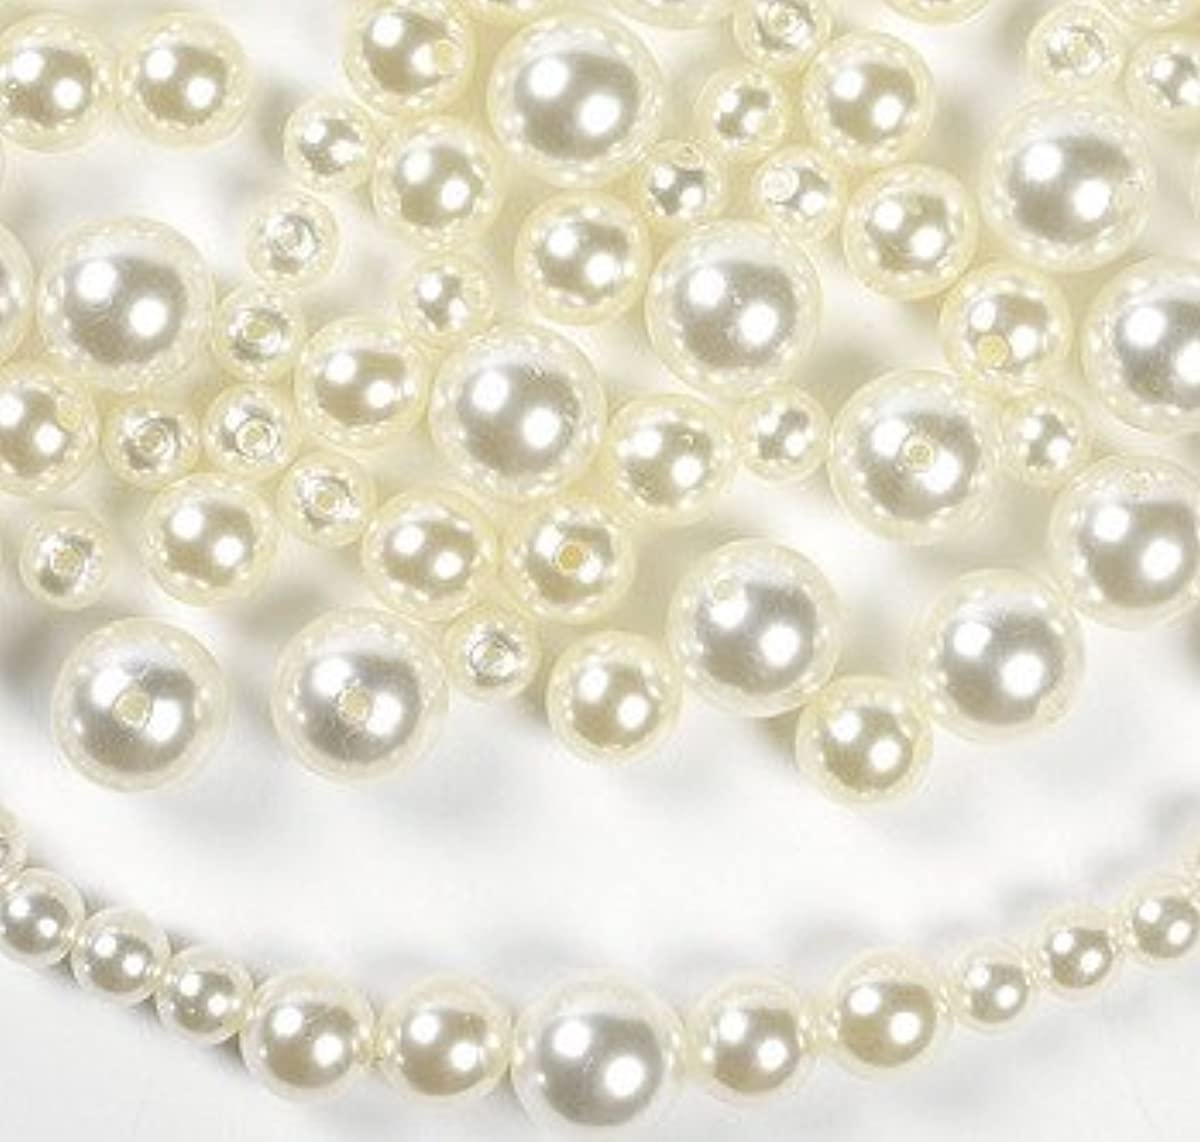 Bulk Plastic Faux Pearl Craft Beads